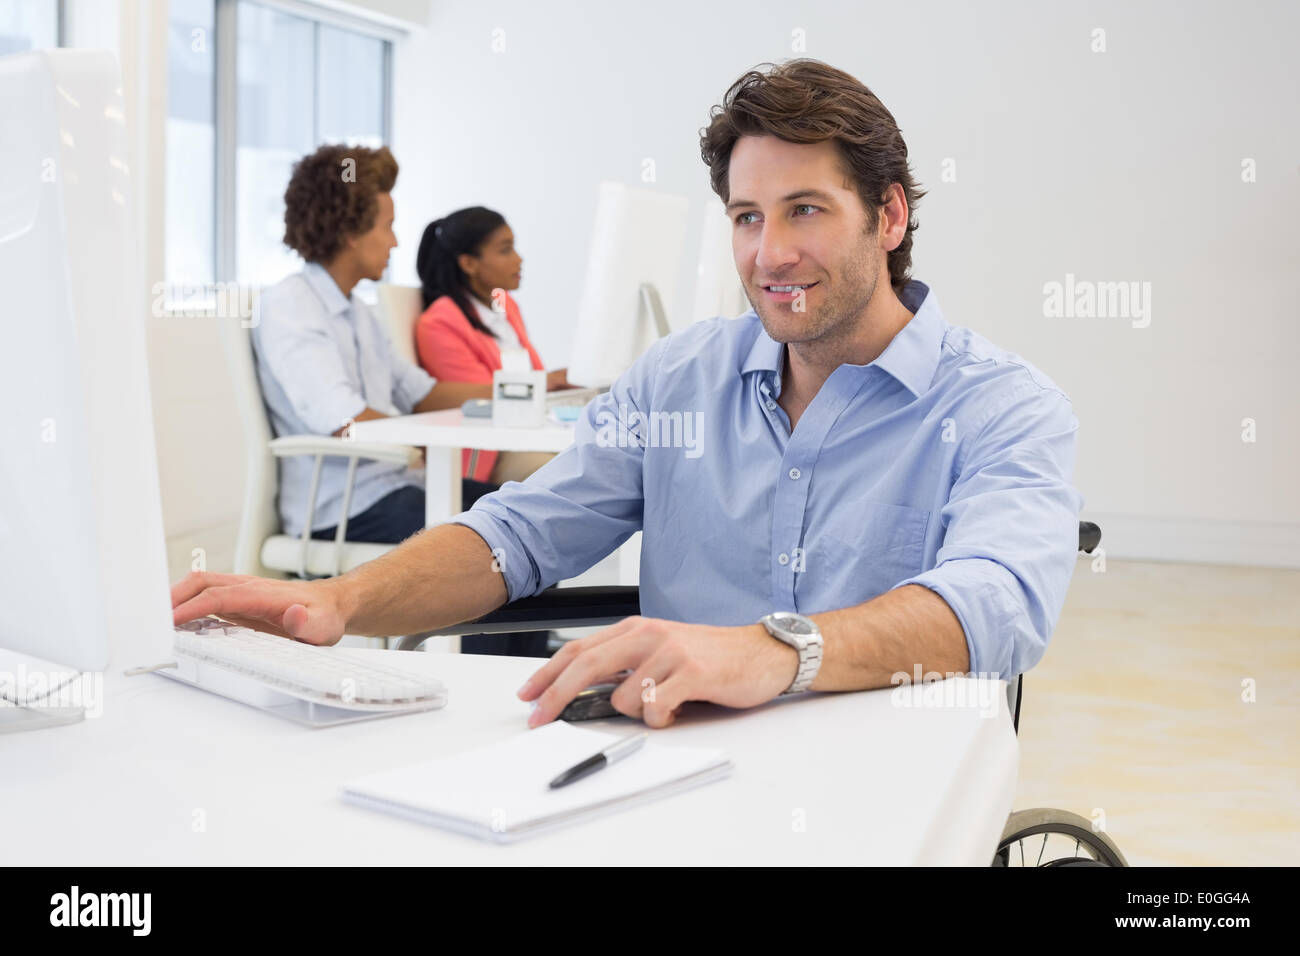 Businessman with disability works hard Stock Photo